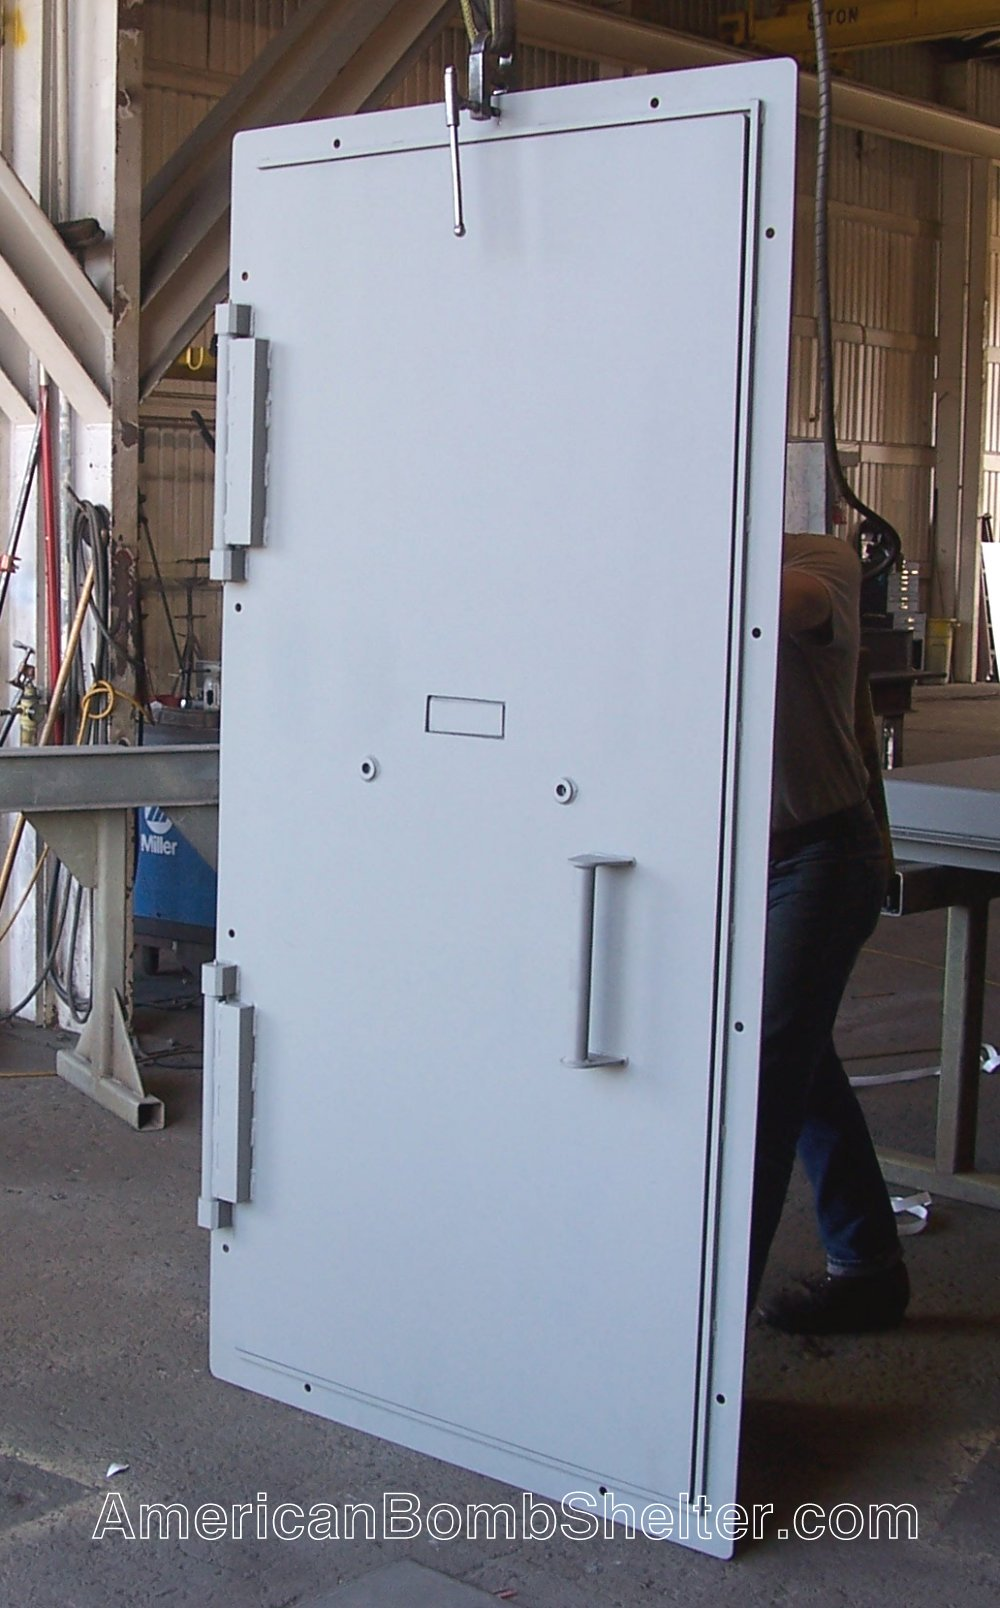 Steel ballistic door for a safe room